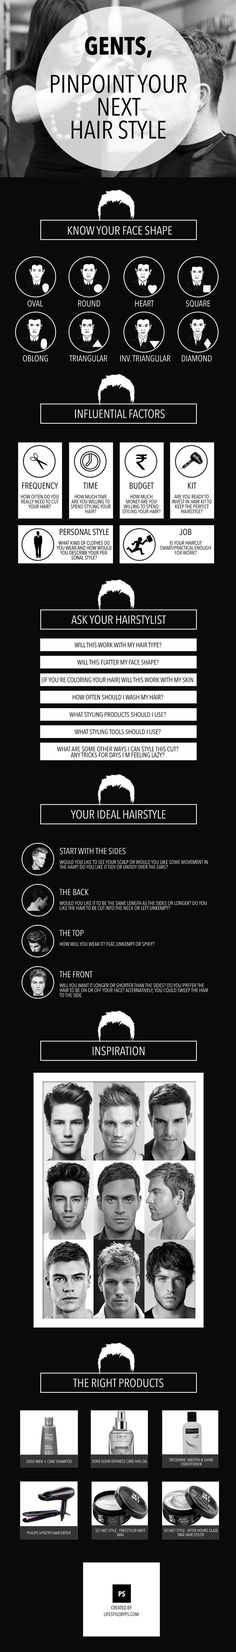 hairstyle infograhic